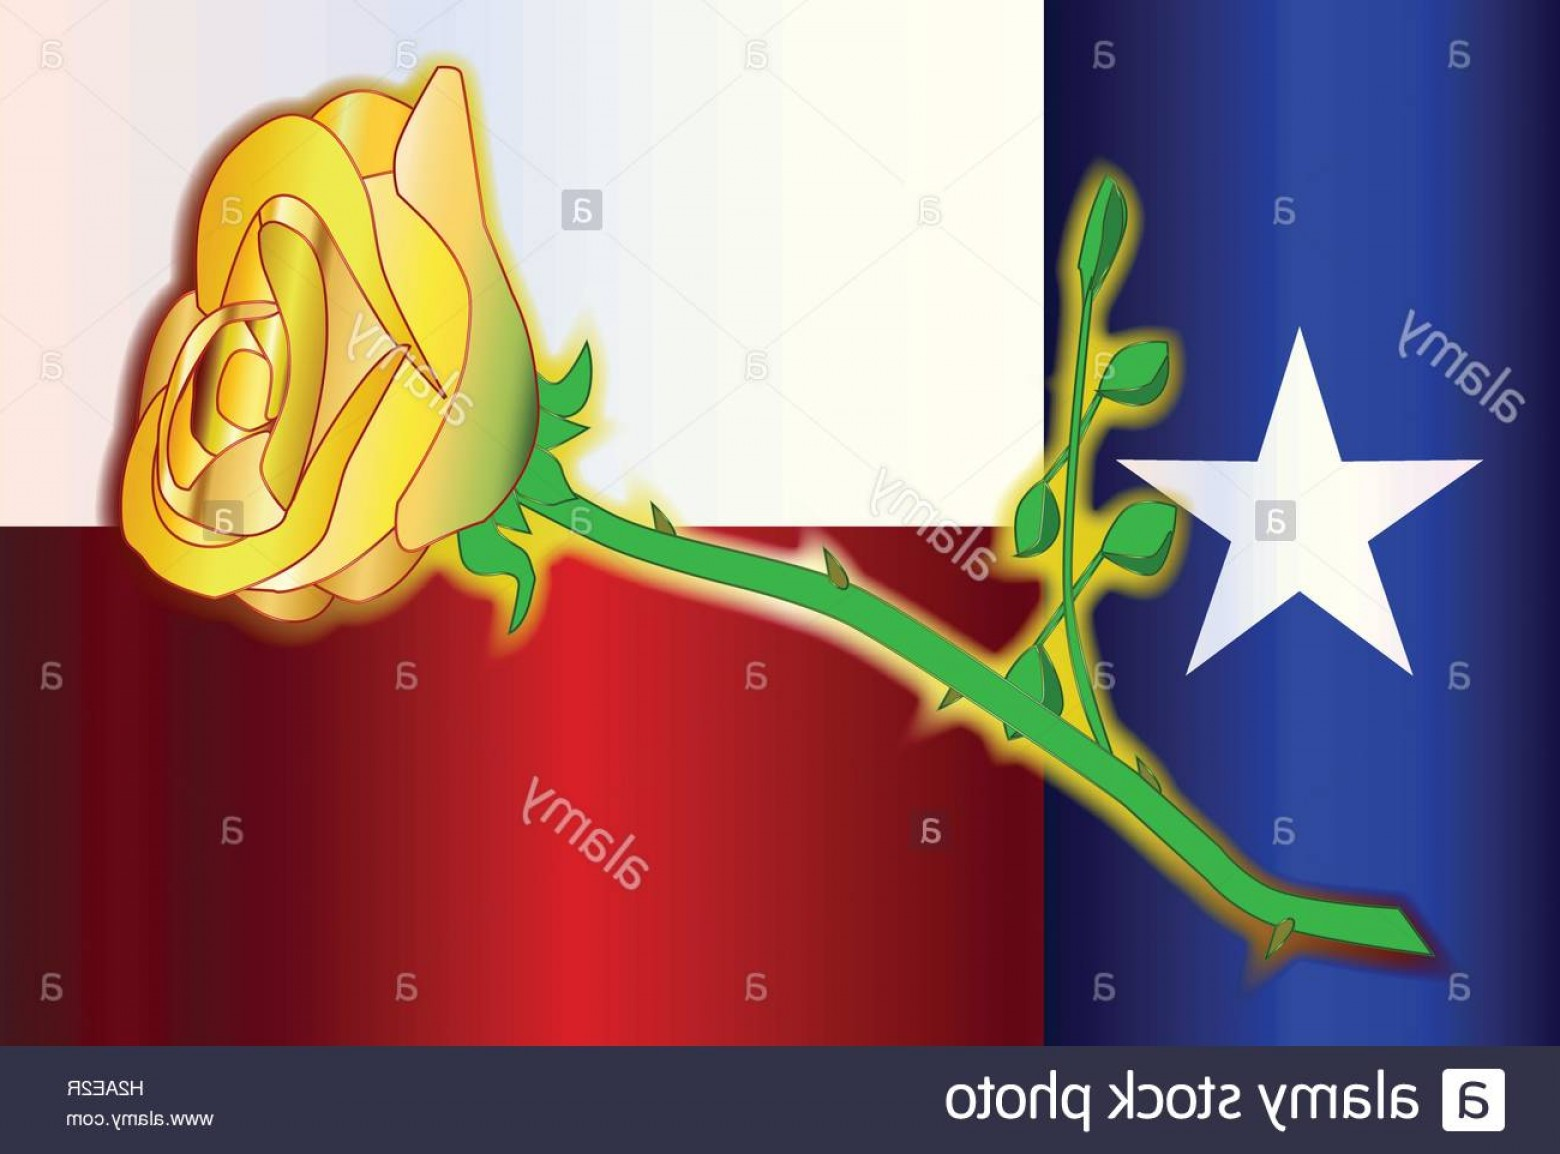 Texas Flag Vector Art: Stock Photo A Cartoon Style Yellow Rose Set On A Texas Flag Background